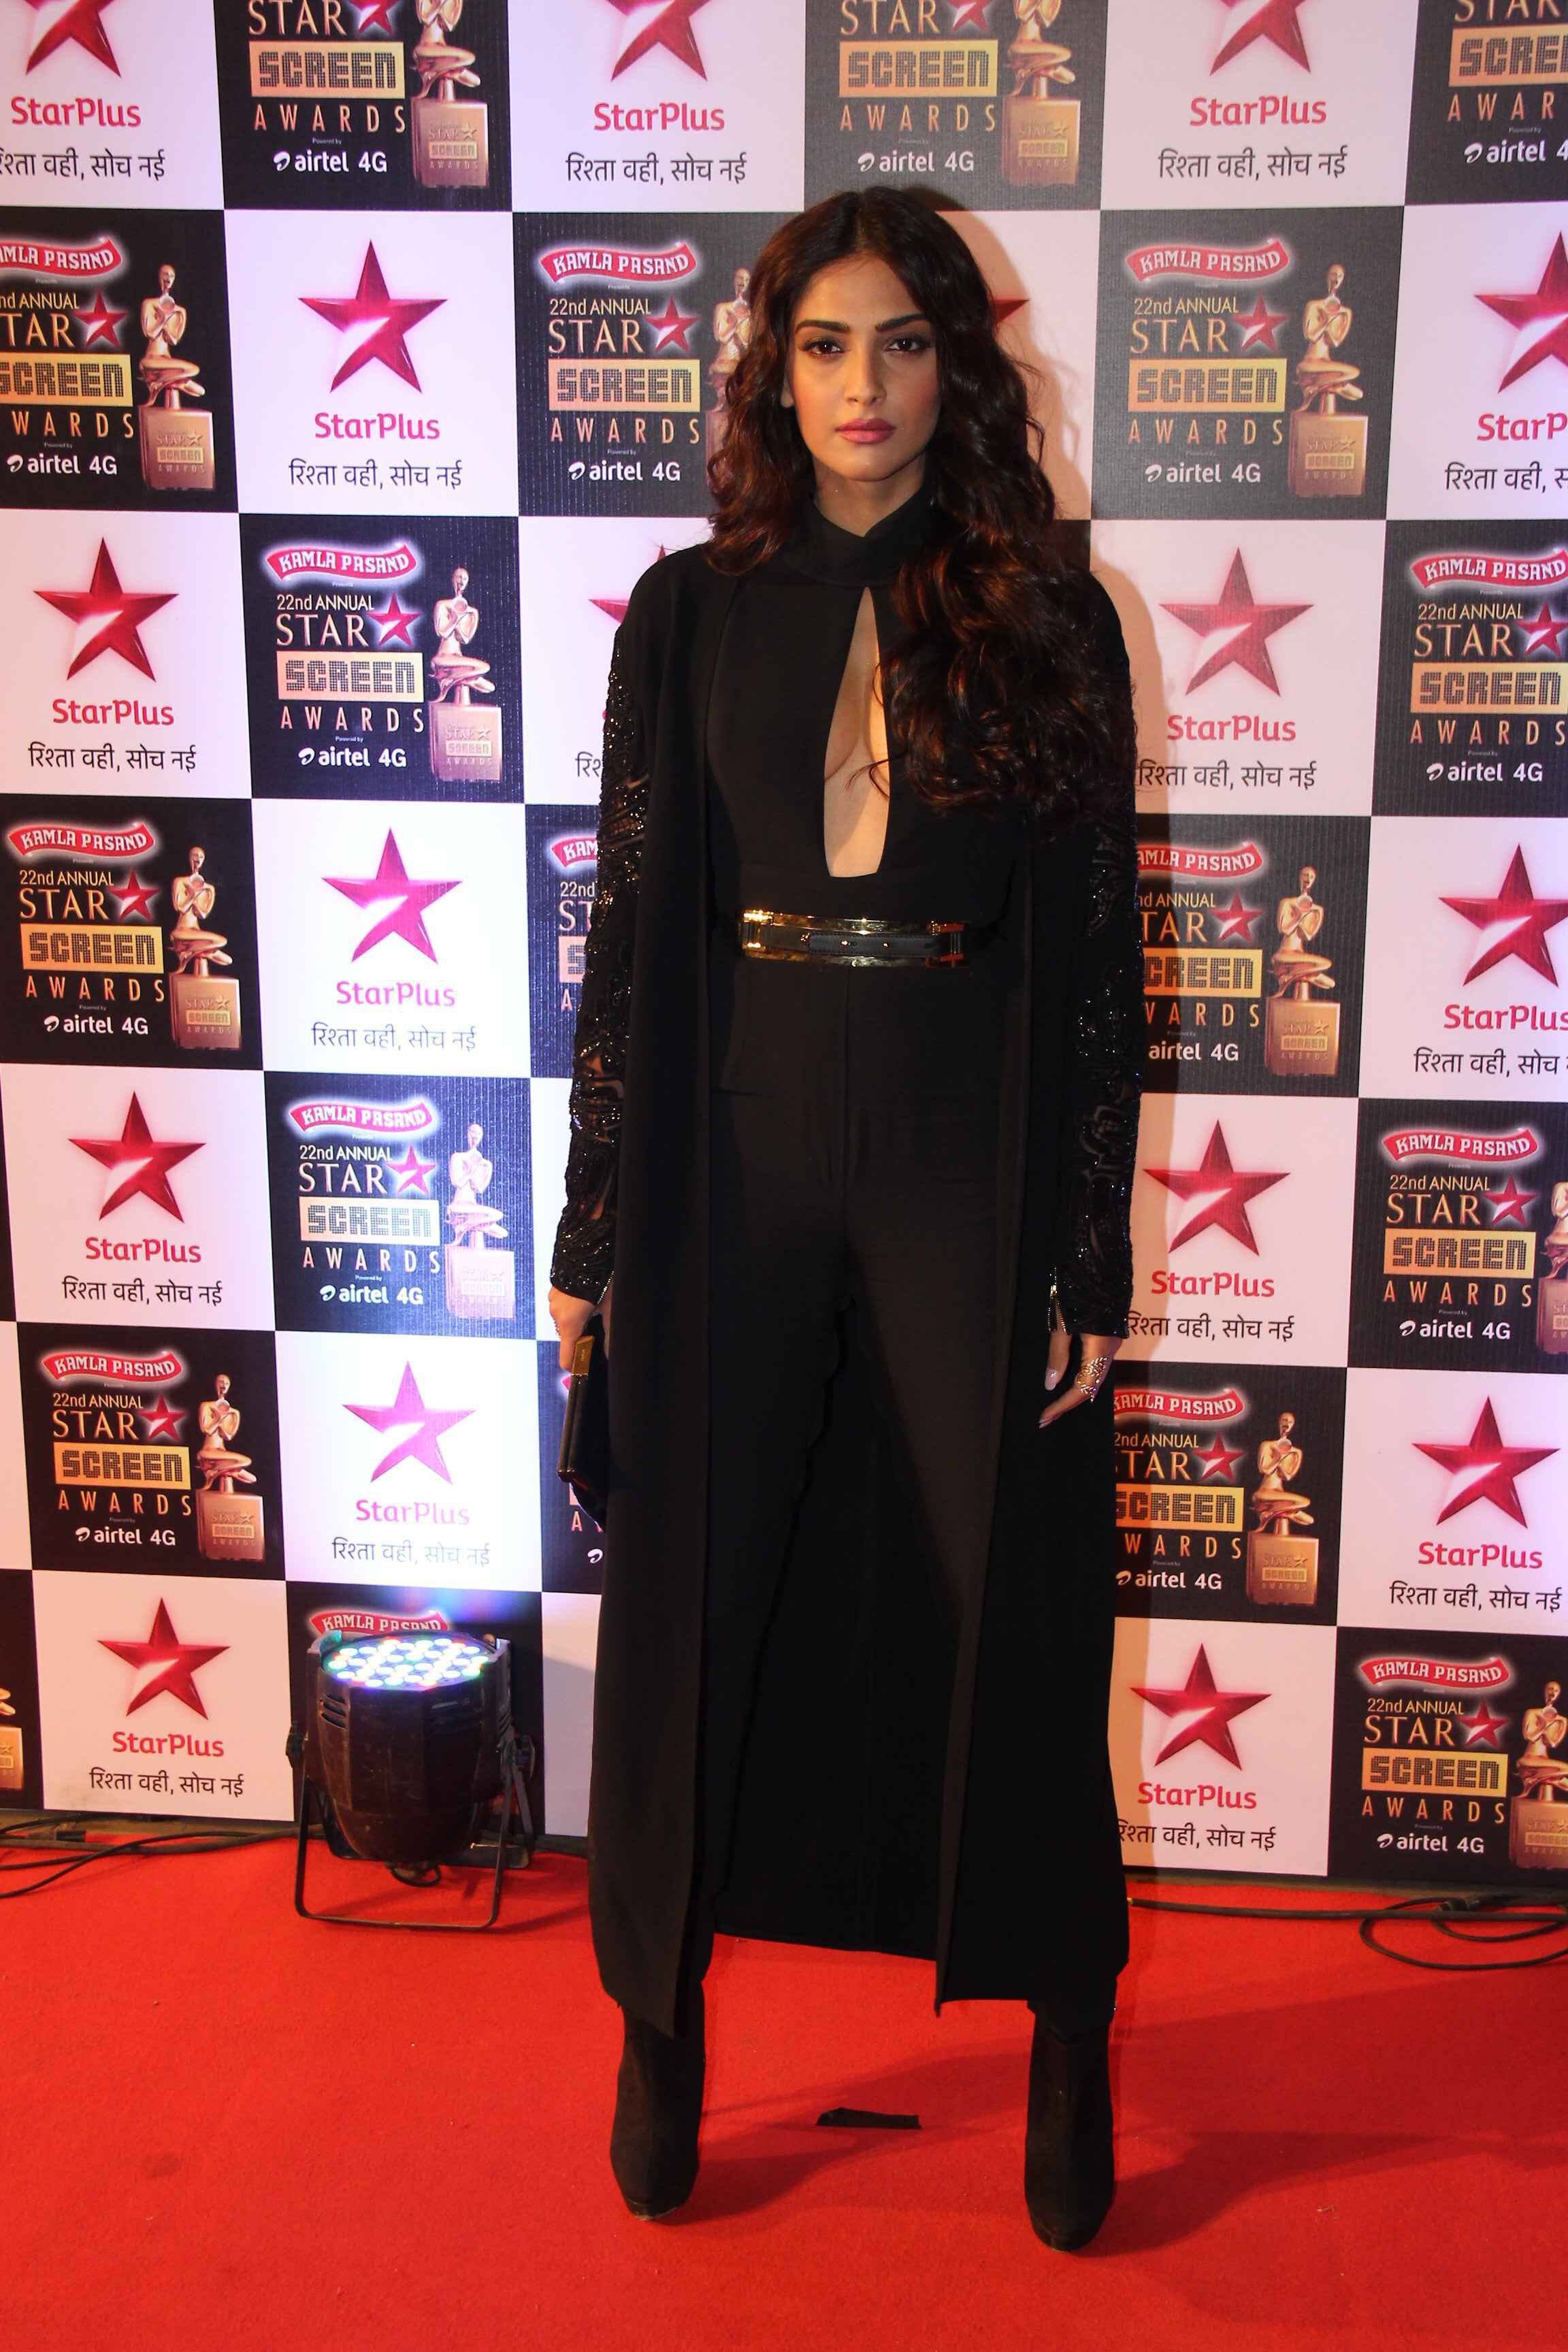 Sonam Kapoor at the Star Screen Awards 2016